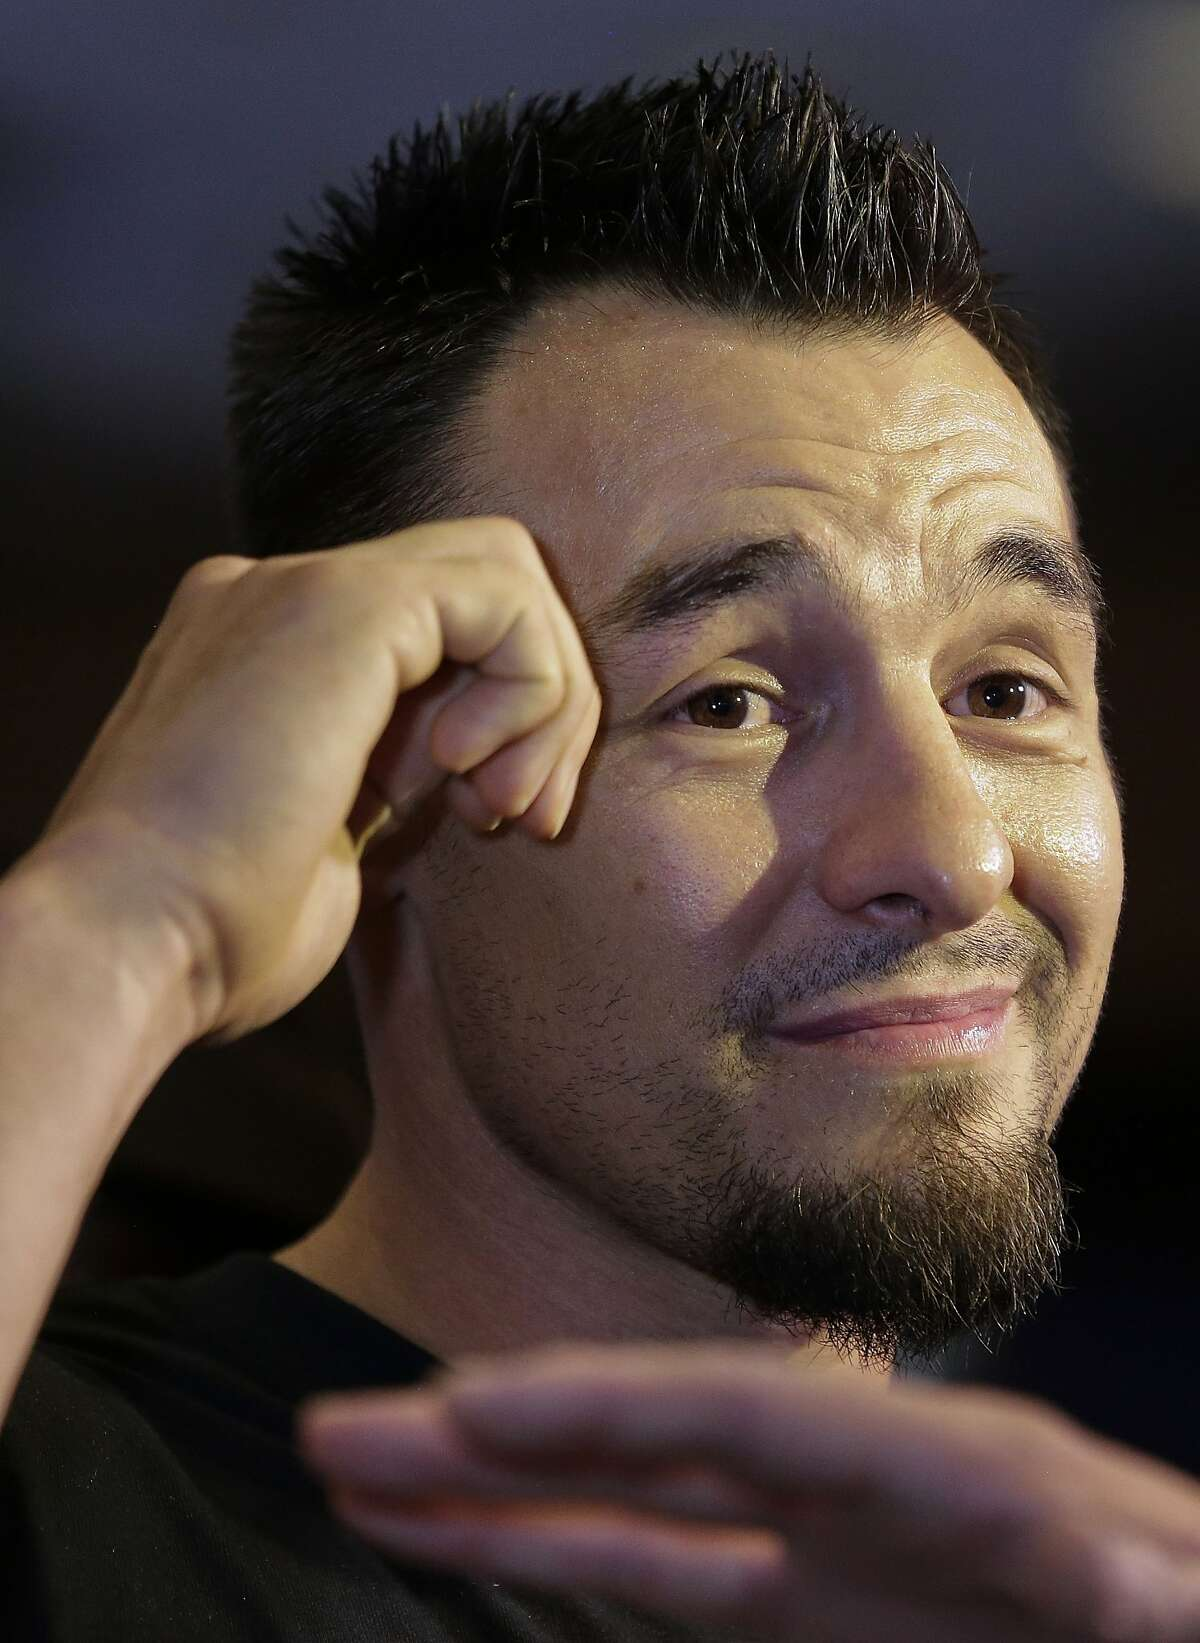 Robert Guerrero answers questions for boxing fans and reporters at the MGM Grand Hotel and Casino, Tuesday, April 30, 2013, in Las Vegas. Guerrero will fight Floyd Mayweather Jr. for the WBC world welterweight championship on Saturday. (AP Photo/Julie Jacobson)